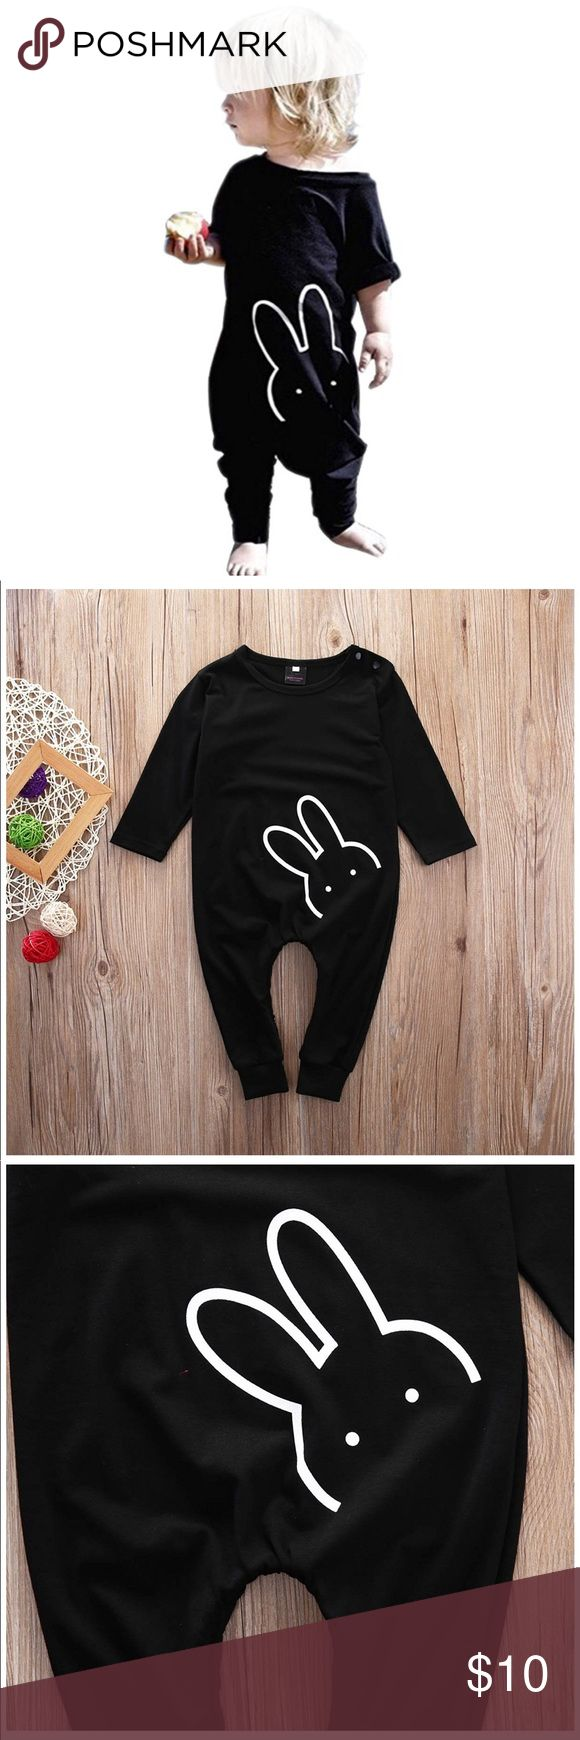 Baby Black Bunny Longsleeve Jumpsuit Newborn Baby Boy Girls Jumpsuit Romper Bodysuit. Snaps at neck for easy on and off. Zipped legs for diaper changes. Brand NEW with High quality. Material: Cotton Blend. Bottoms Jumpsuits & Rompers